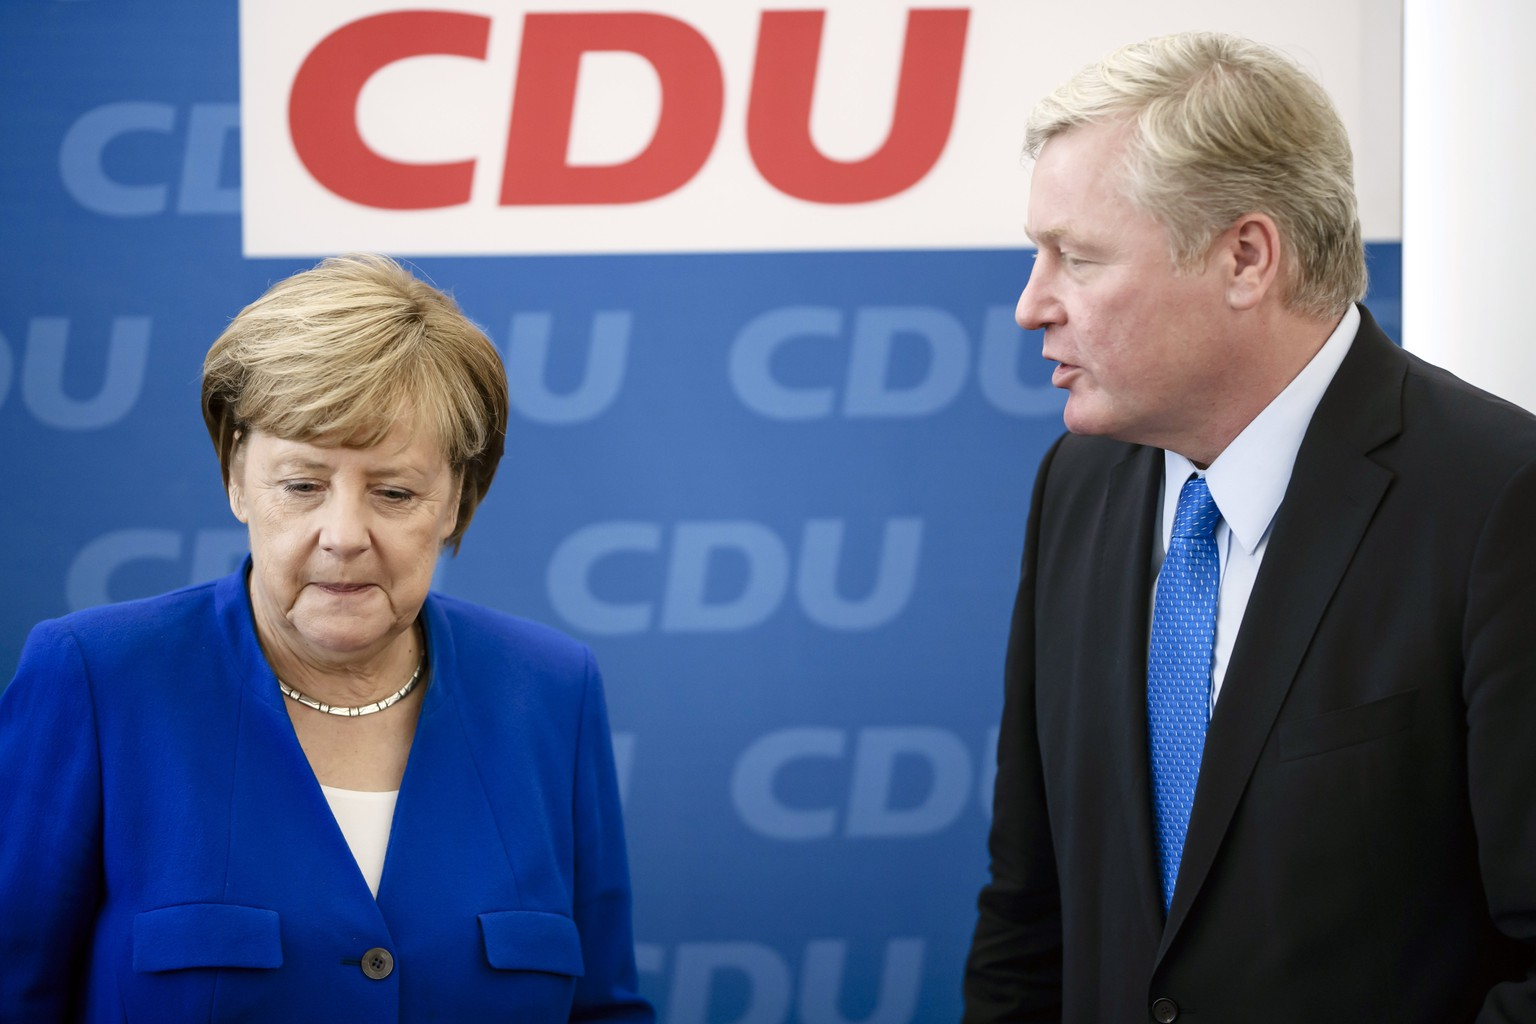 epa06268886 German Chancellor Angela Merkel (L) of the Christian Democratic Union (CDU) stands next to Bernd Althusmann (R), leader of the Christian Democratic Union (CDU) in Lower Saxony and top candidate for the state elections of his party, after he received flowers from her during a party's board meeting at the CDU headquarters in Berlin, Germany, 16 October 2017. According to preliminary official results, the CDU won 33.6 percent of the vote in Lower Saxony in the previous day's federal state elections, which were originally planned for 14 January 2018. The electoral term was brought forward after a deputy of the governing coalition had moved to the opposition fraction of conservatives, and the state government lost its one-vote majority in parliament.  EPA/CLEMENS BILAN